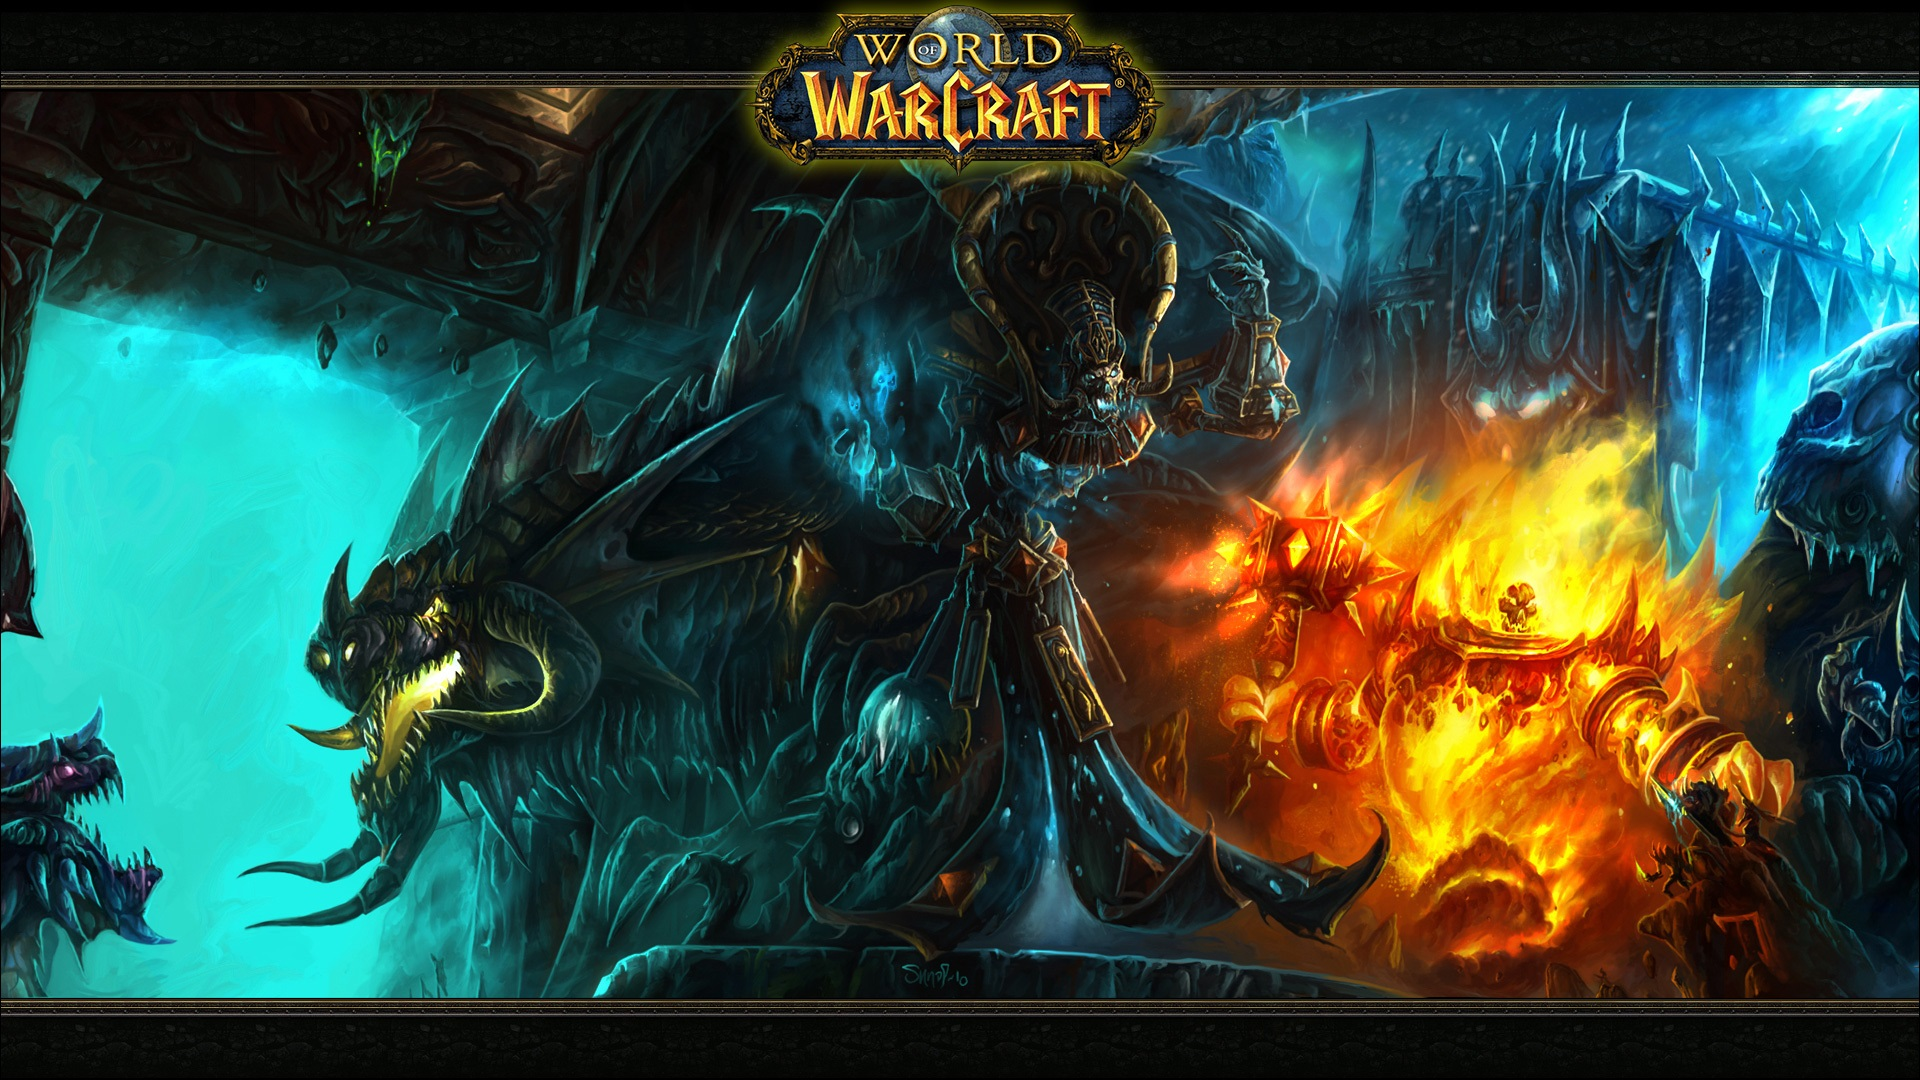 Index Of World Of Warcraftwow Hd Wallpaper Pack 1 Frozen Throneir